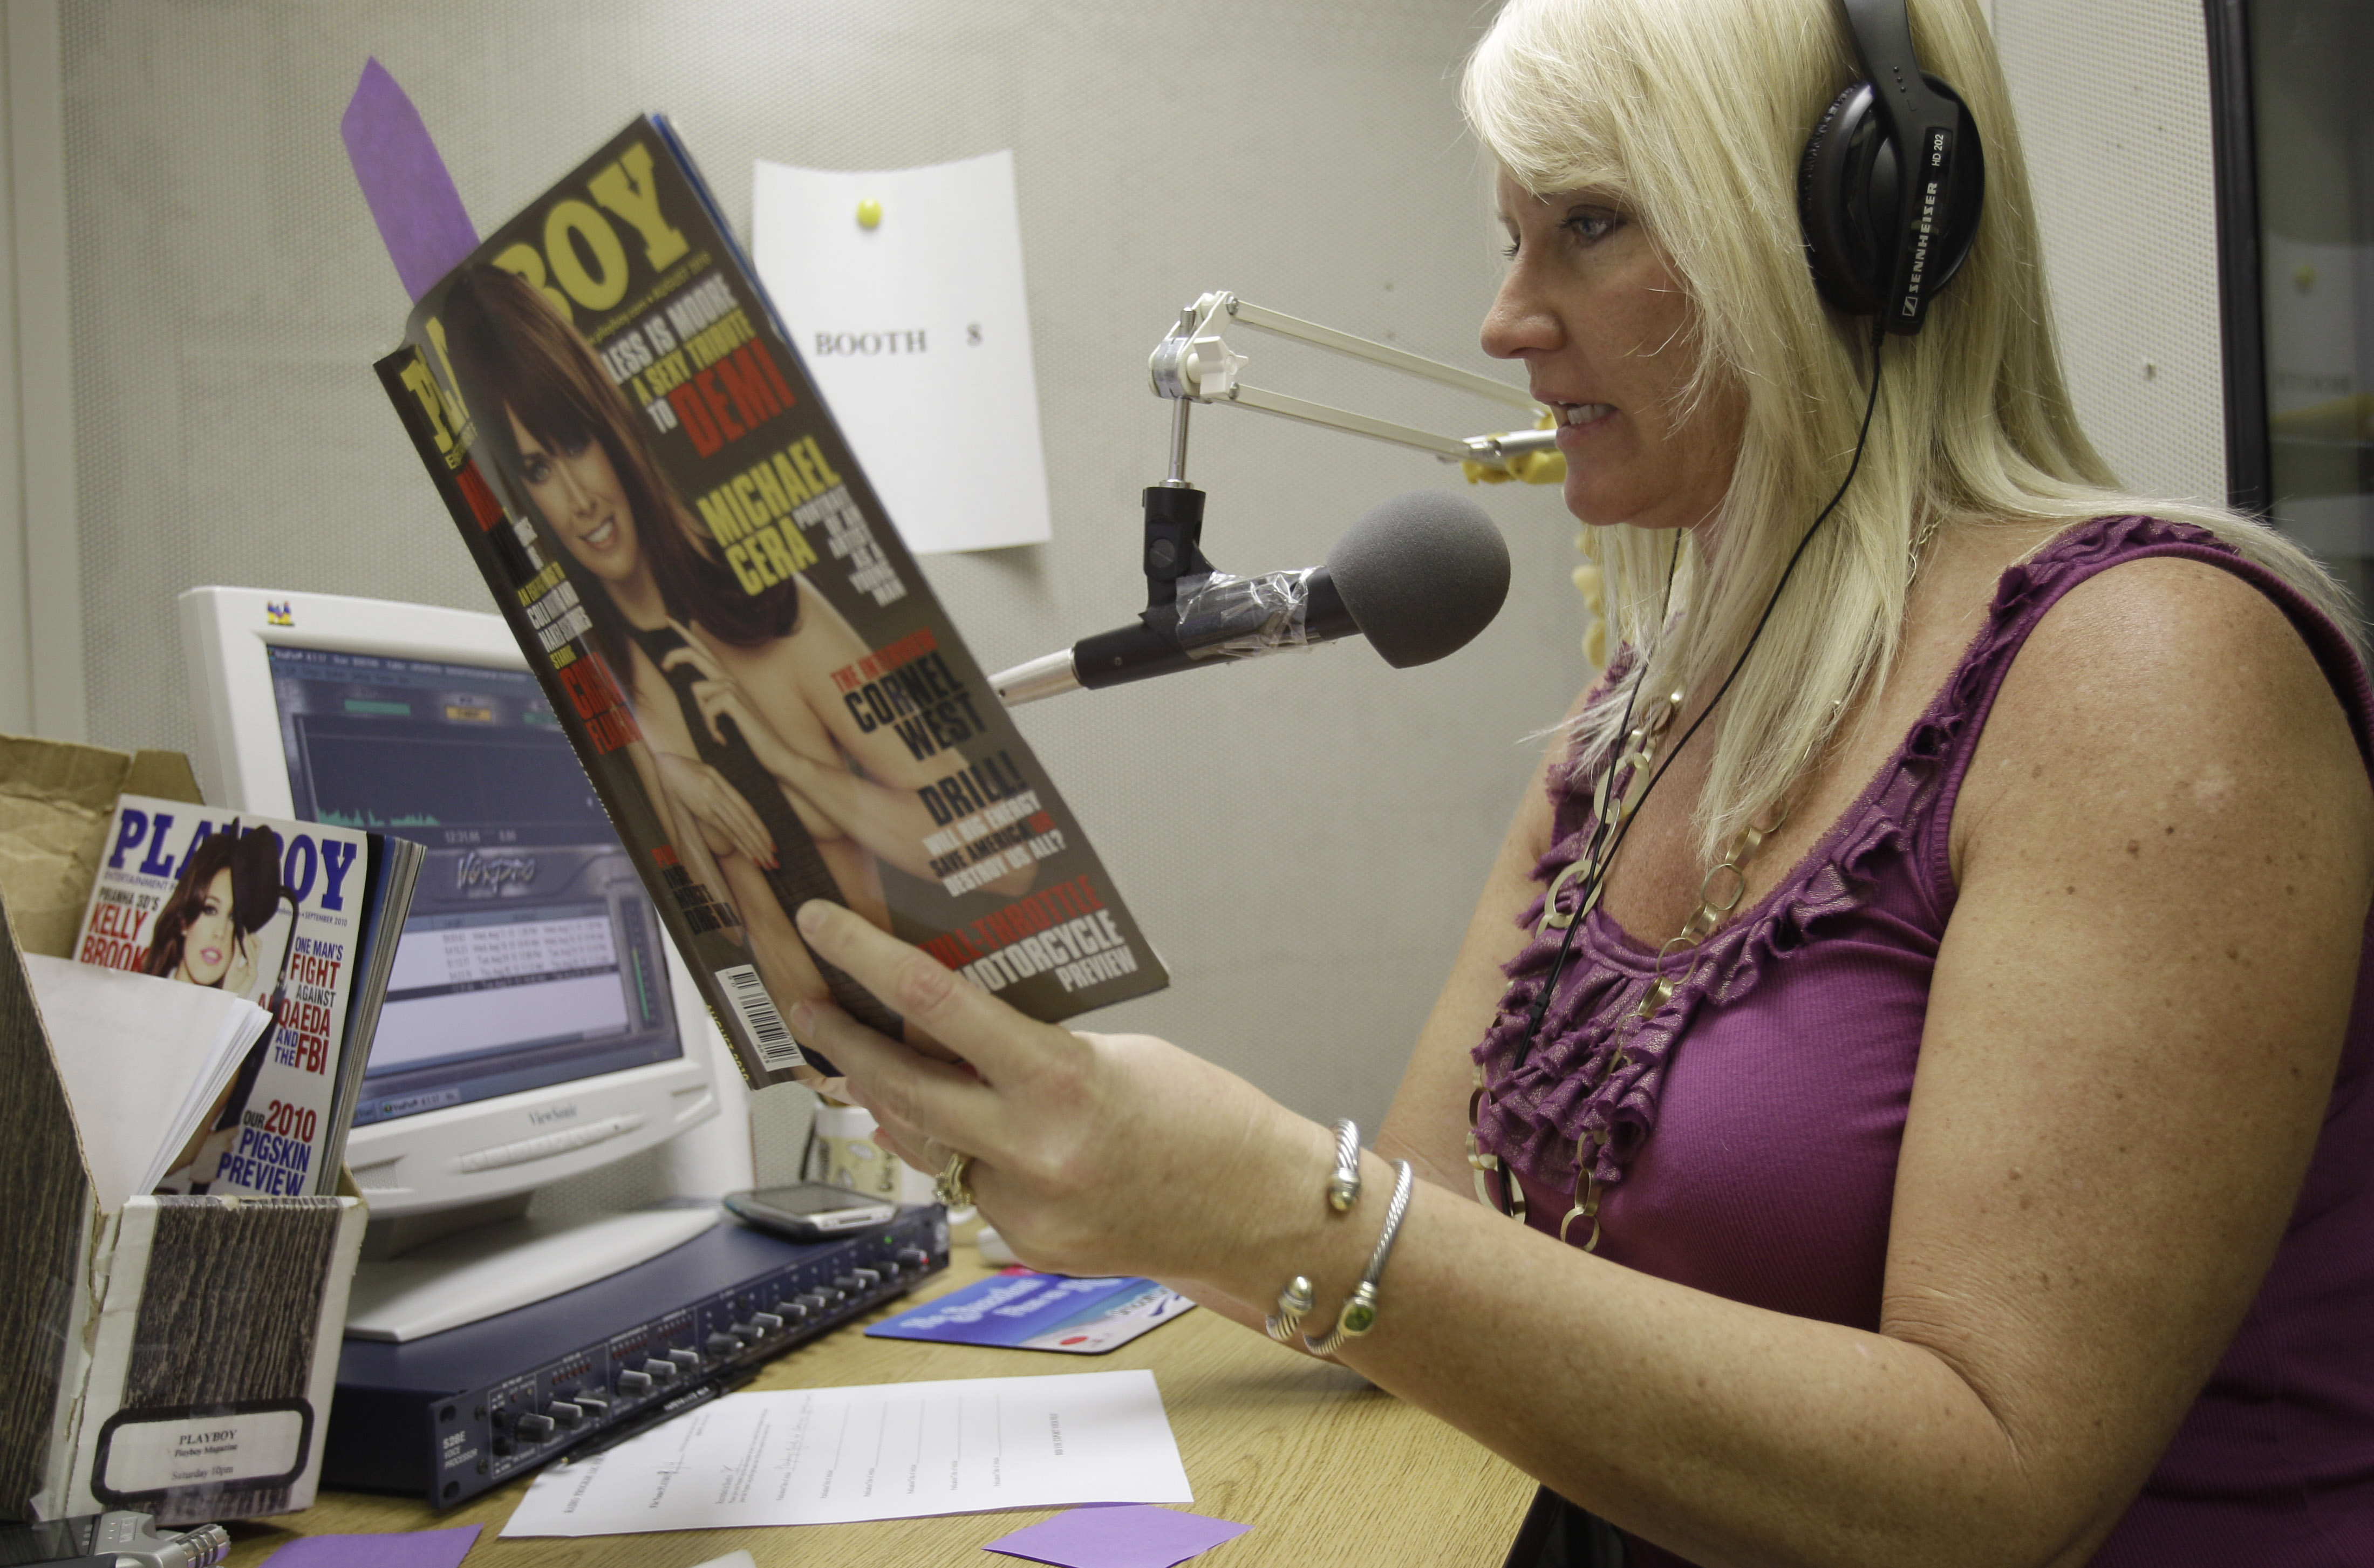 Suzi Hanks sits in a tiny sound booth demonstrating how she describes a Playboy magazine photo, just before she spends her weekly hour reading the mag...